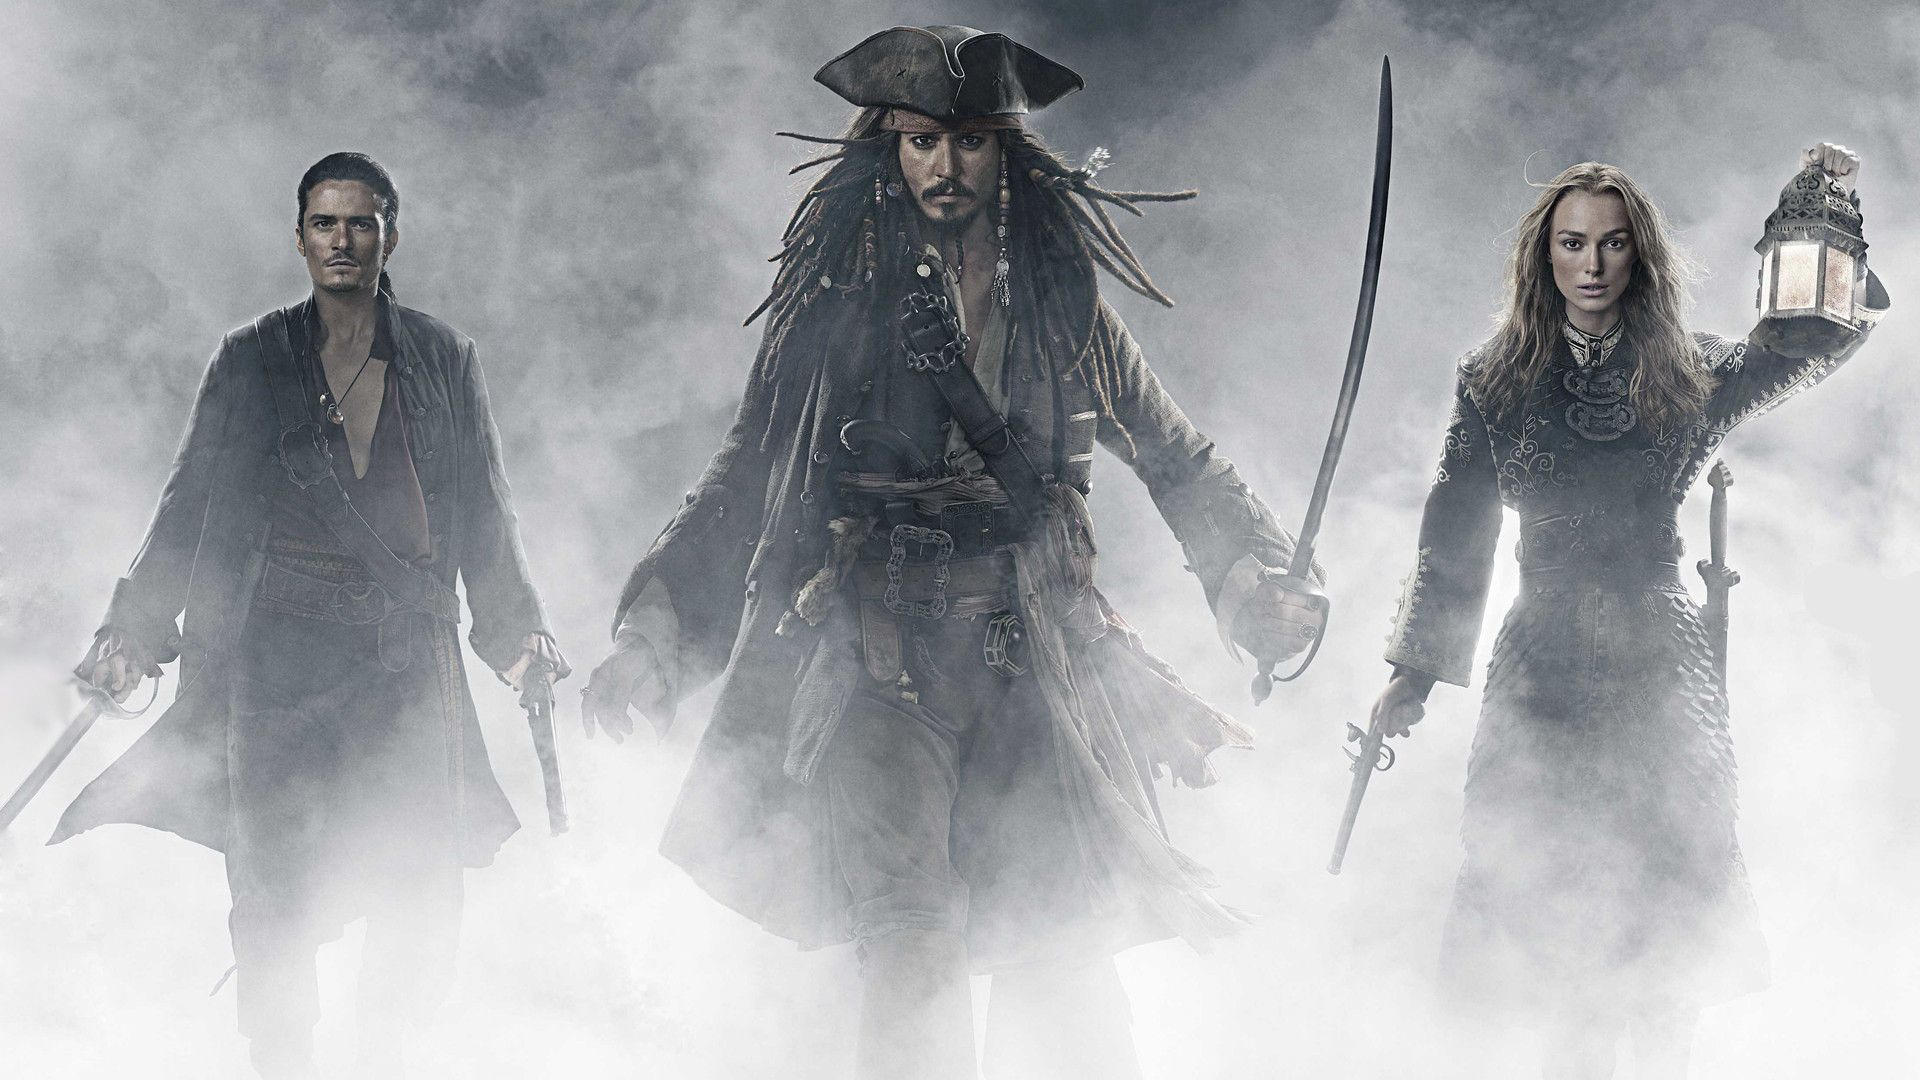 Pirates Of The Caribbean Wallpapers Top Free Pirates Of The Caribbean Backgrounds Wallpaperaccess